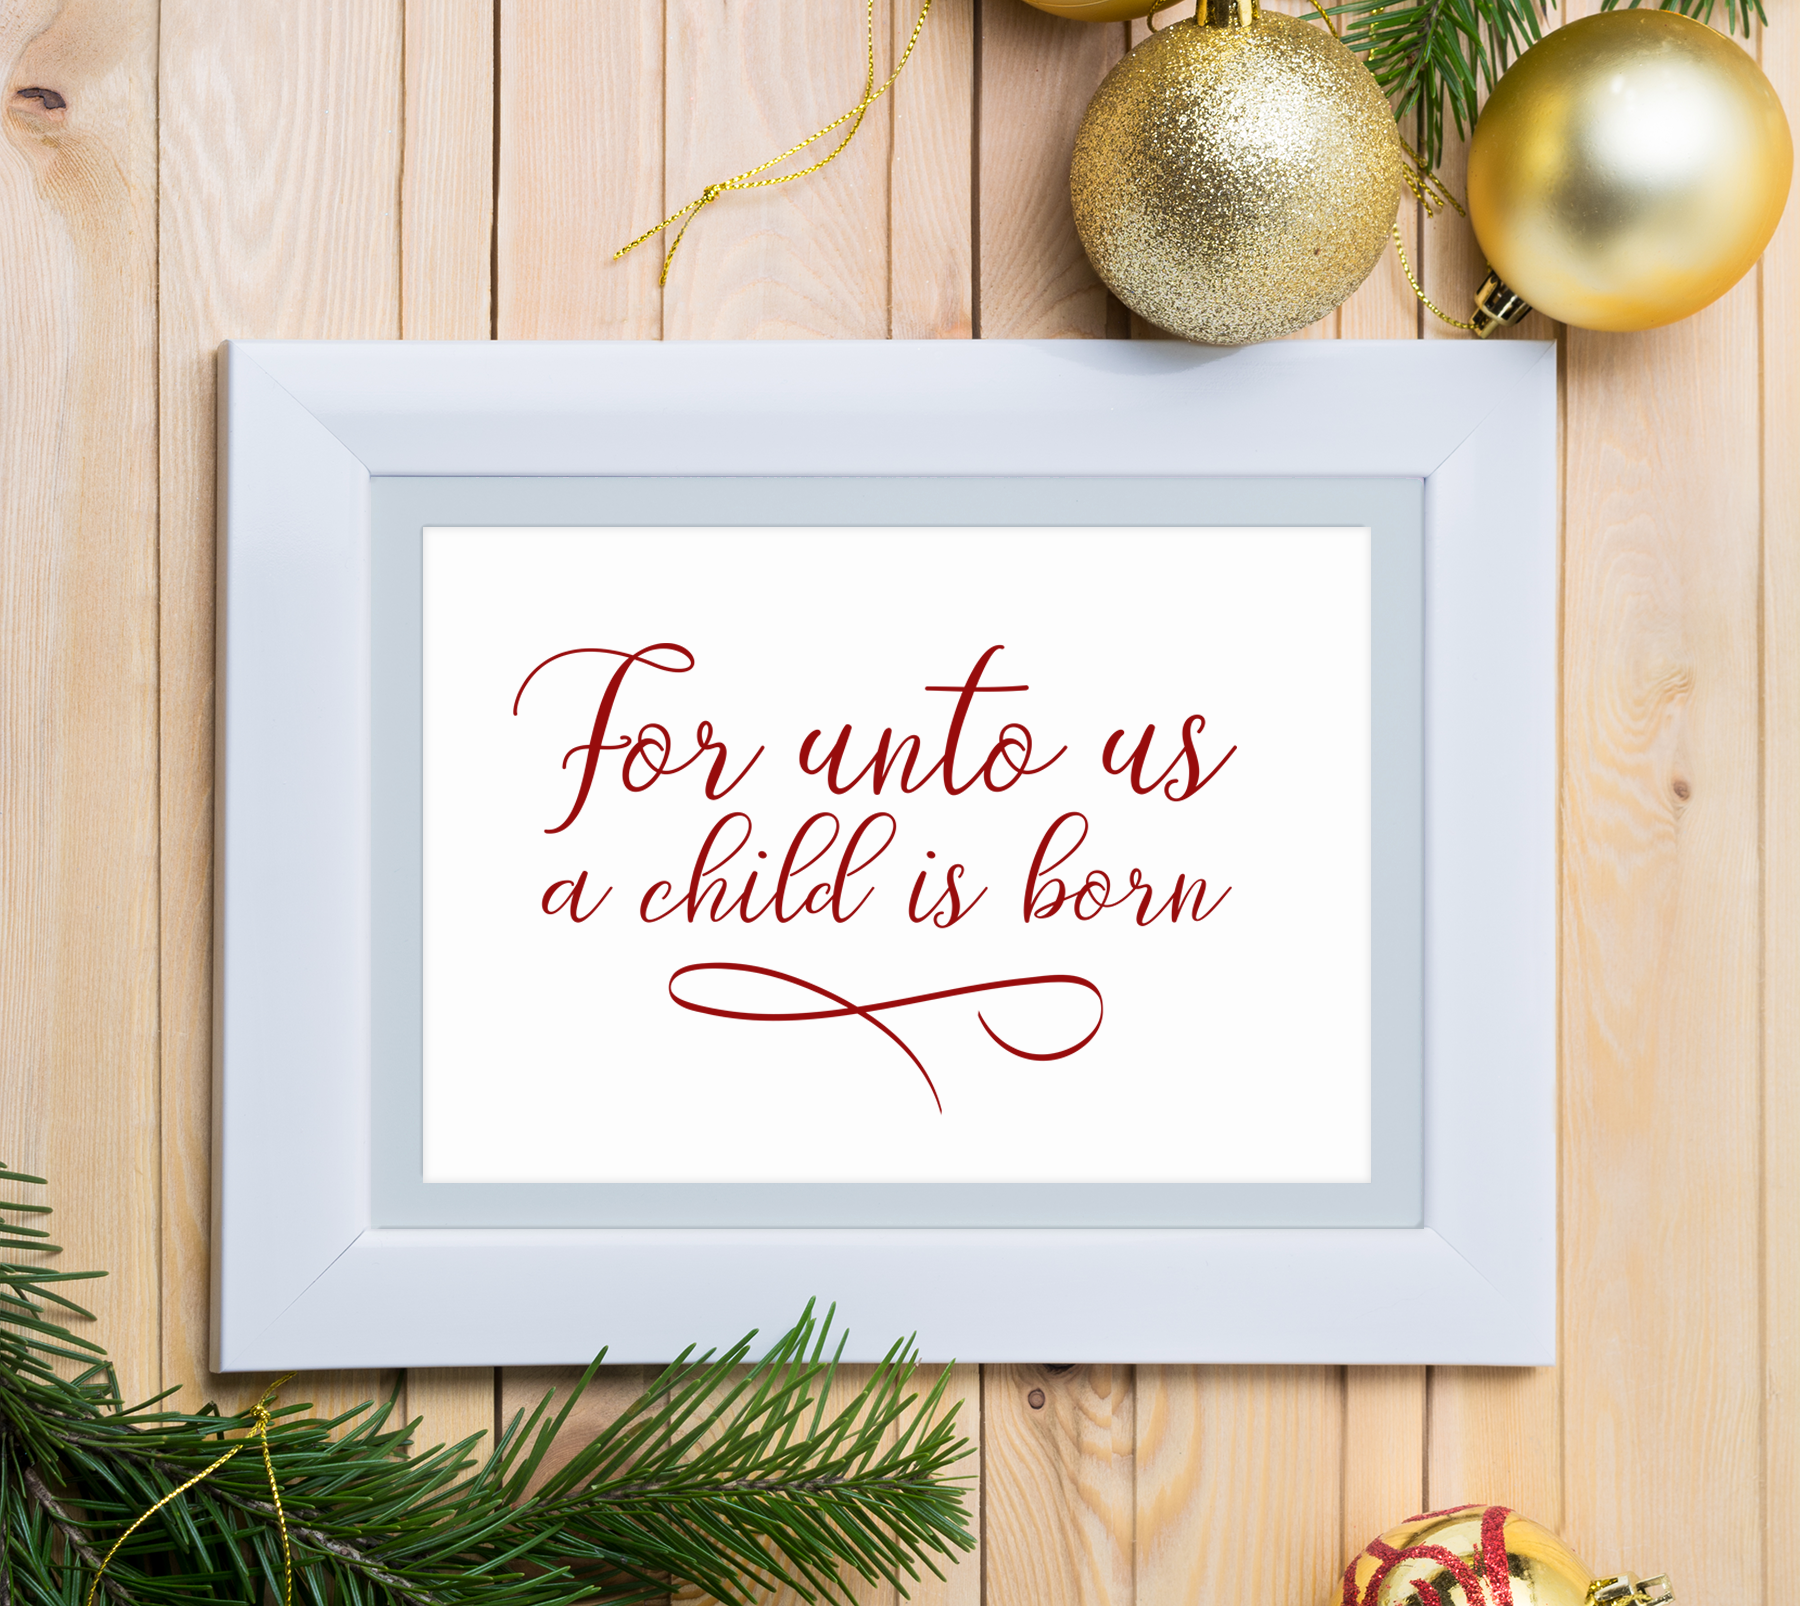 For Unto Us a Child is Born, A Christmas Scripture SVG example image 3